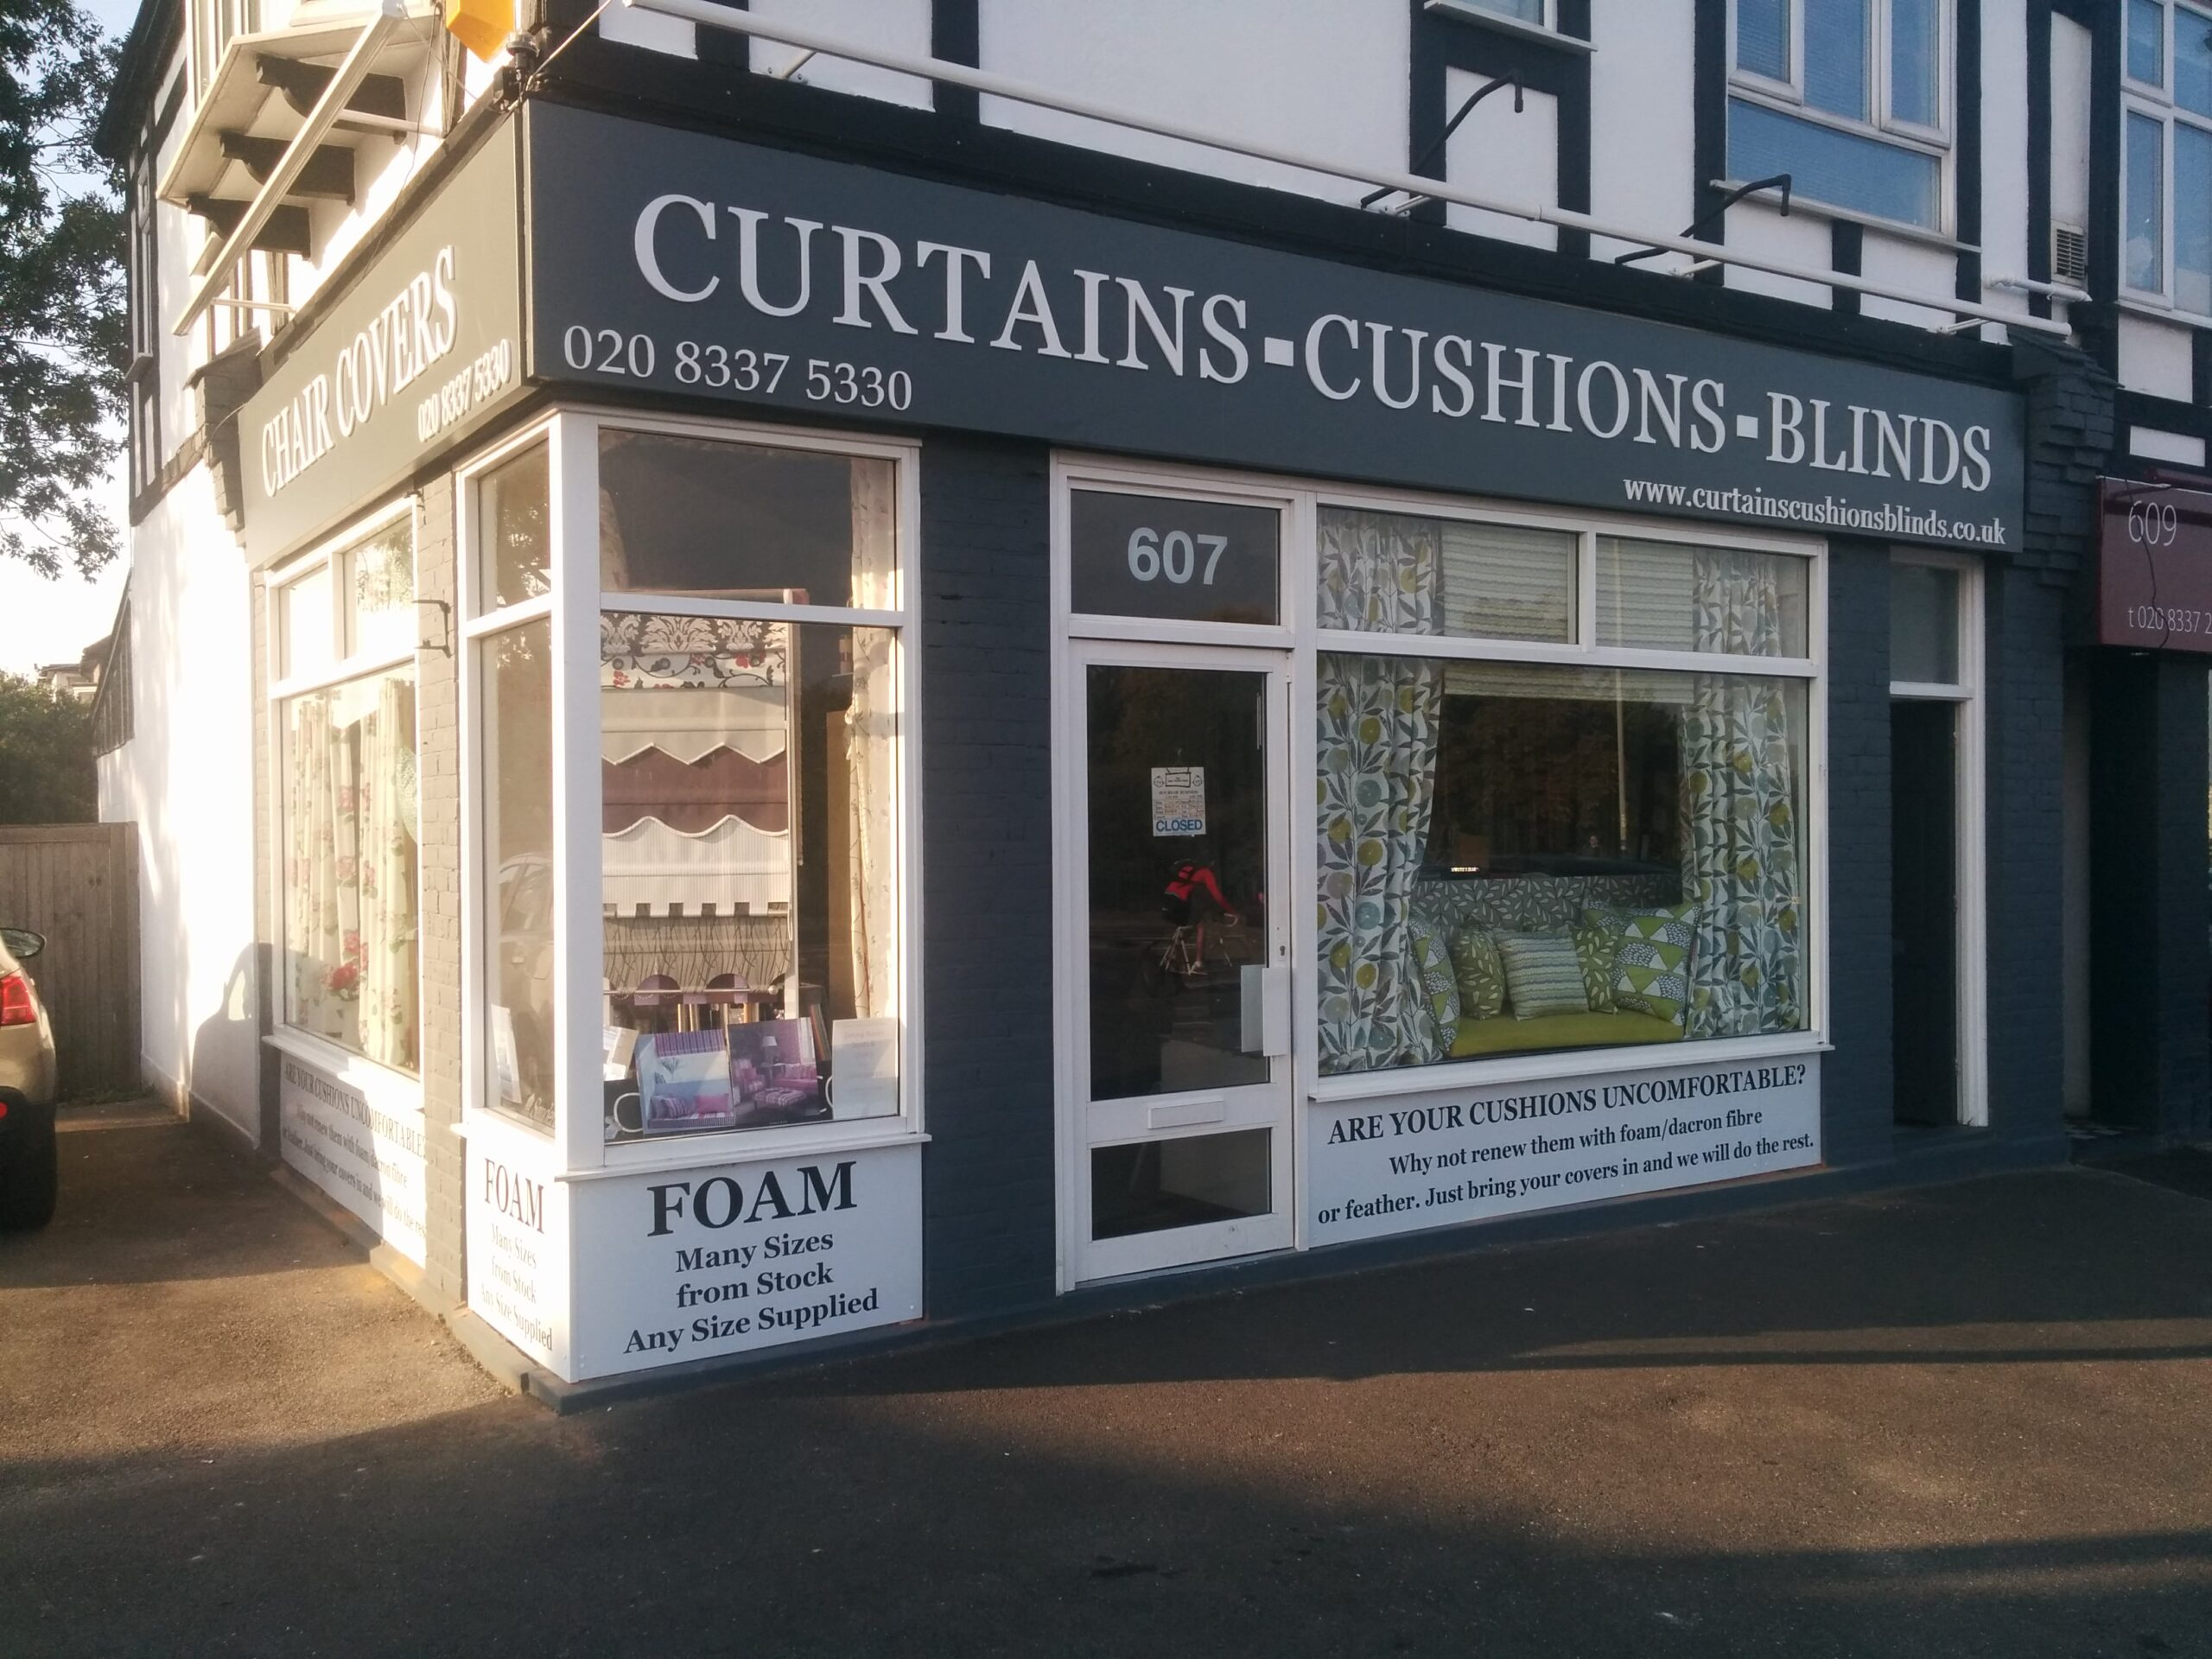 The exterior of our Curtains Cushions Blinds Shop in London Road, North Cheam, SM3 9DF